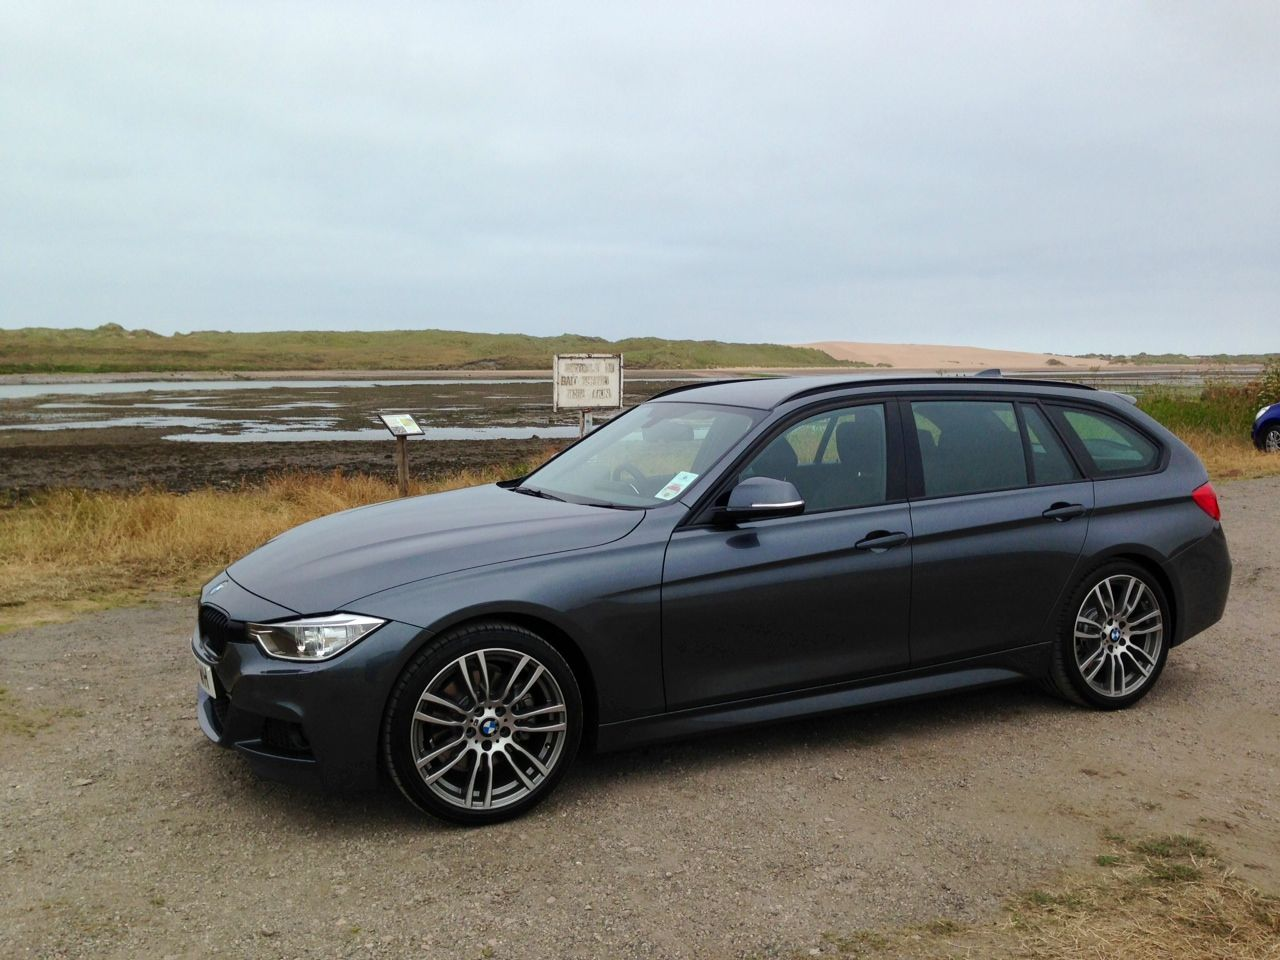 Bmw 328i 2008 >> (F30) Official MINERAL GREY F30 Photo Thread - Page 10